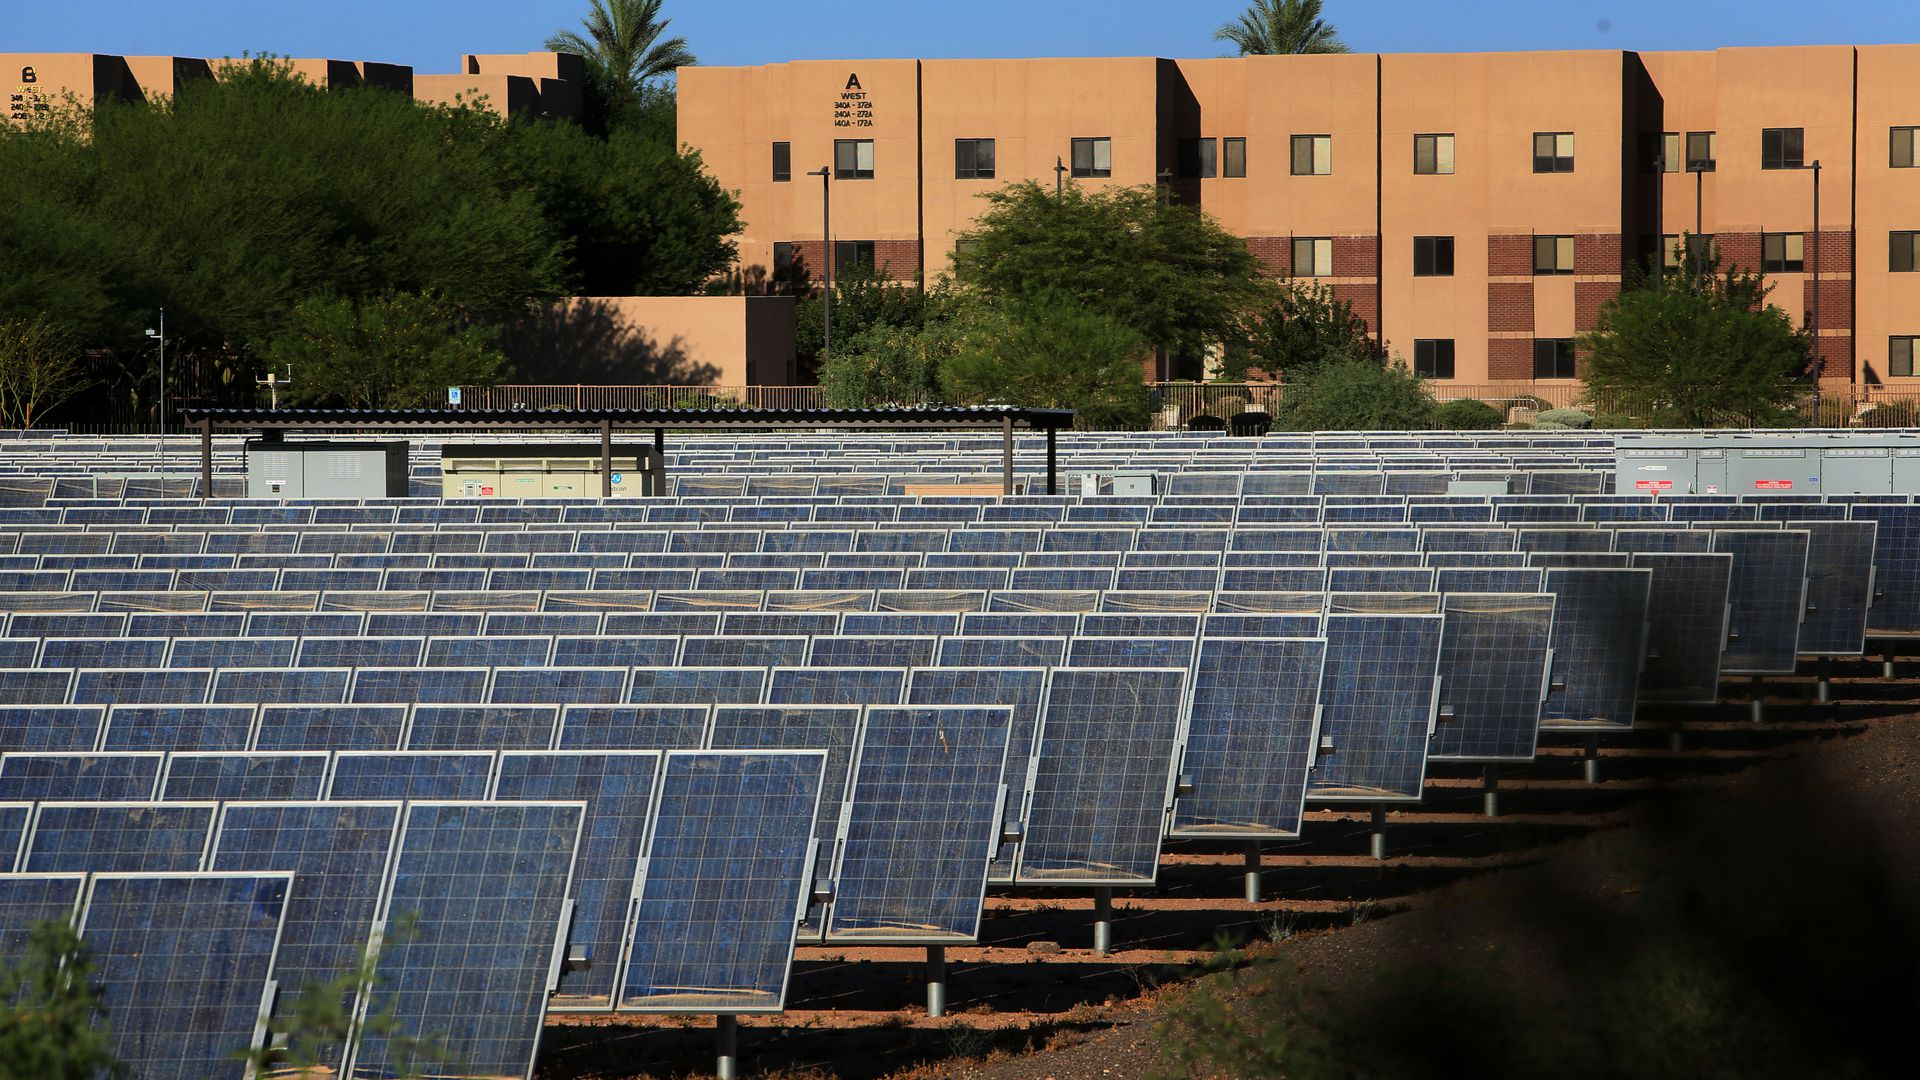 A solar farm system on the campus of Arizone State University in Phoenix, AZ on Thursday, June 20, 2013.